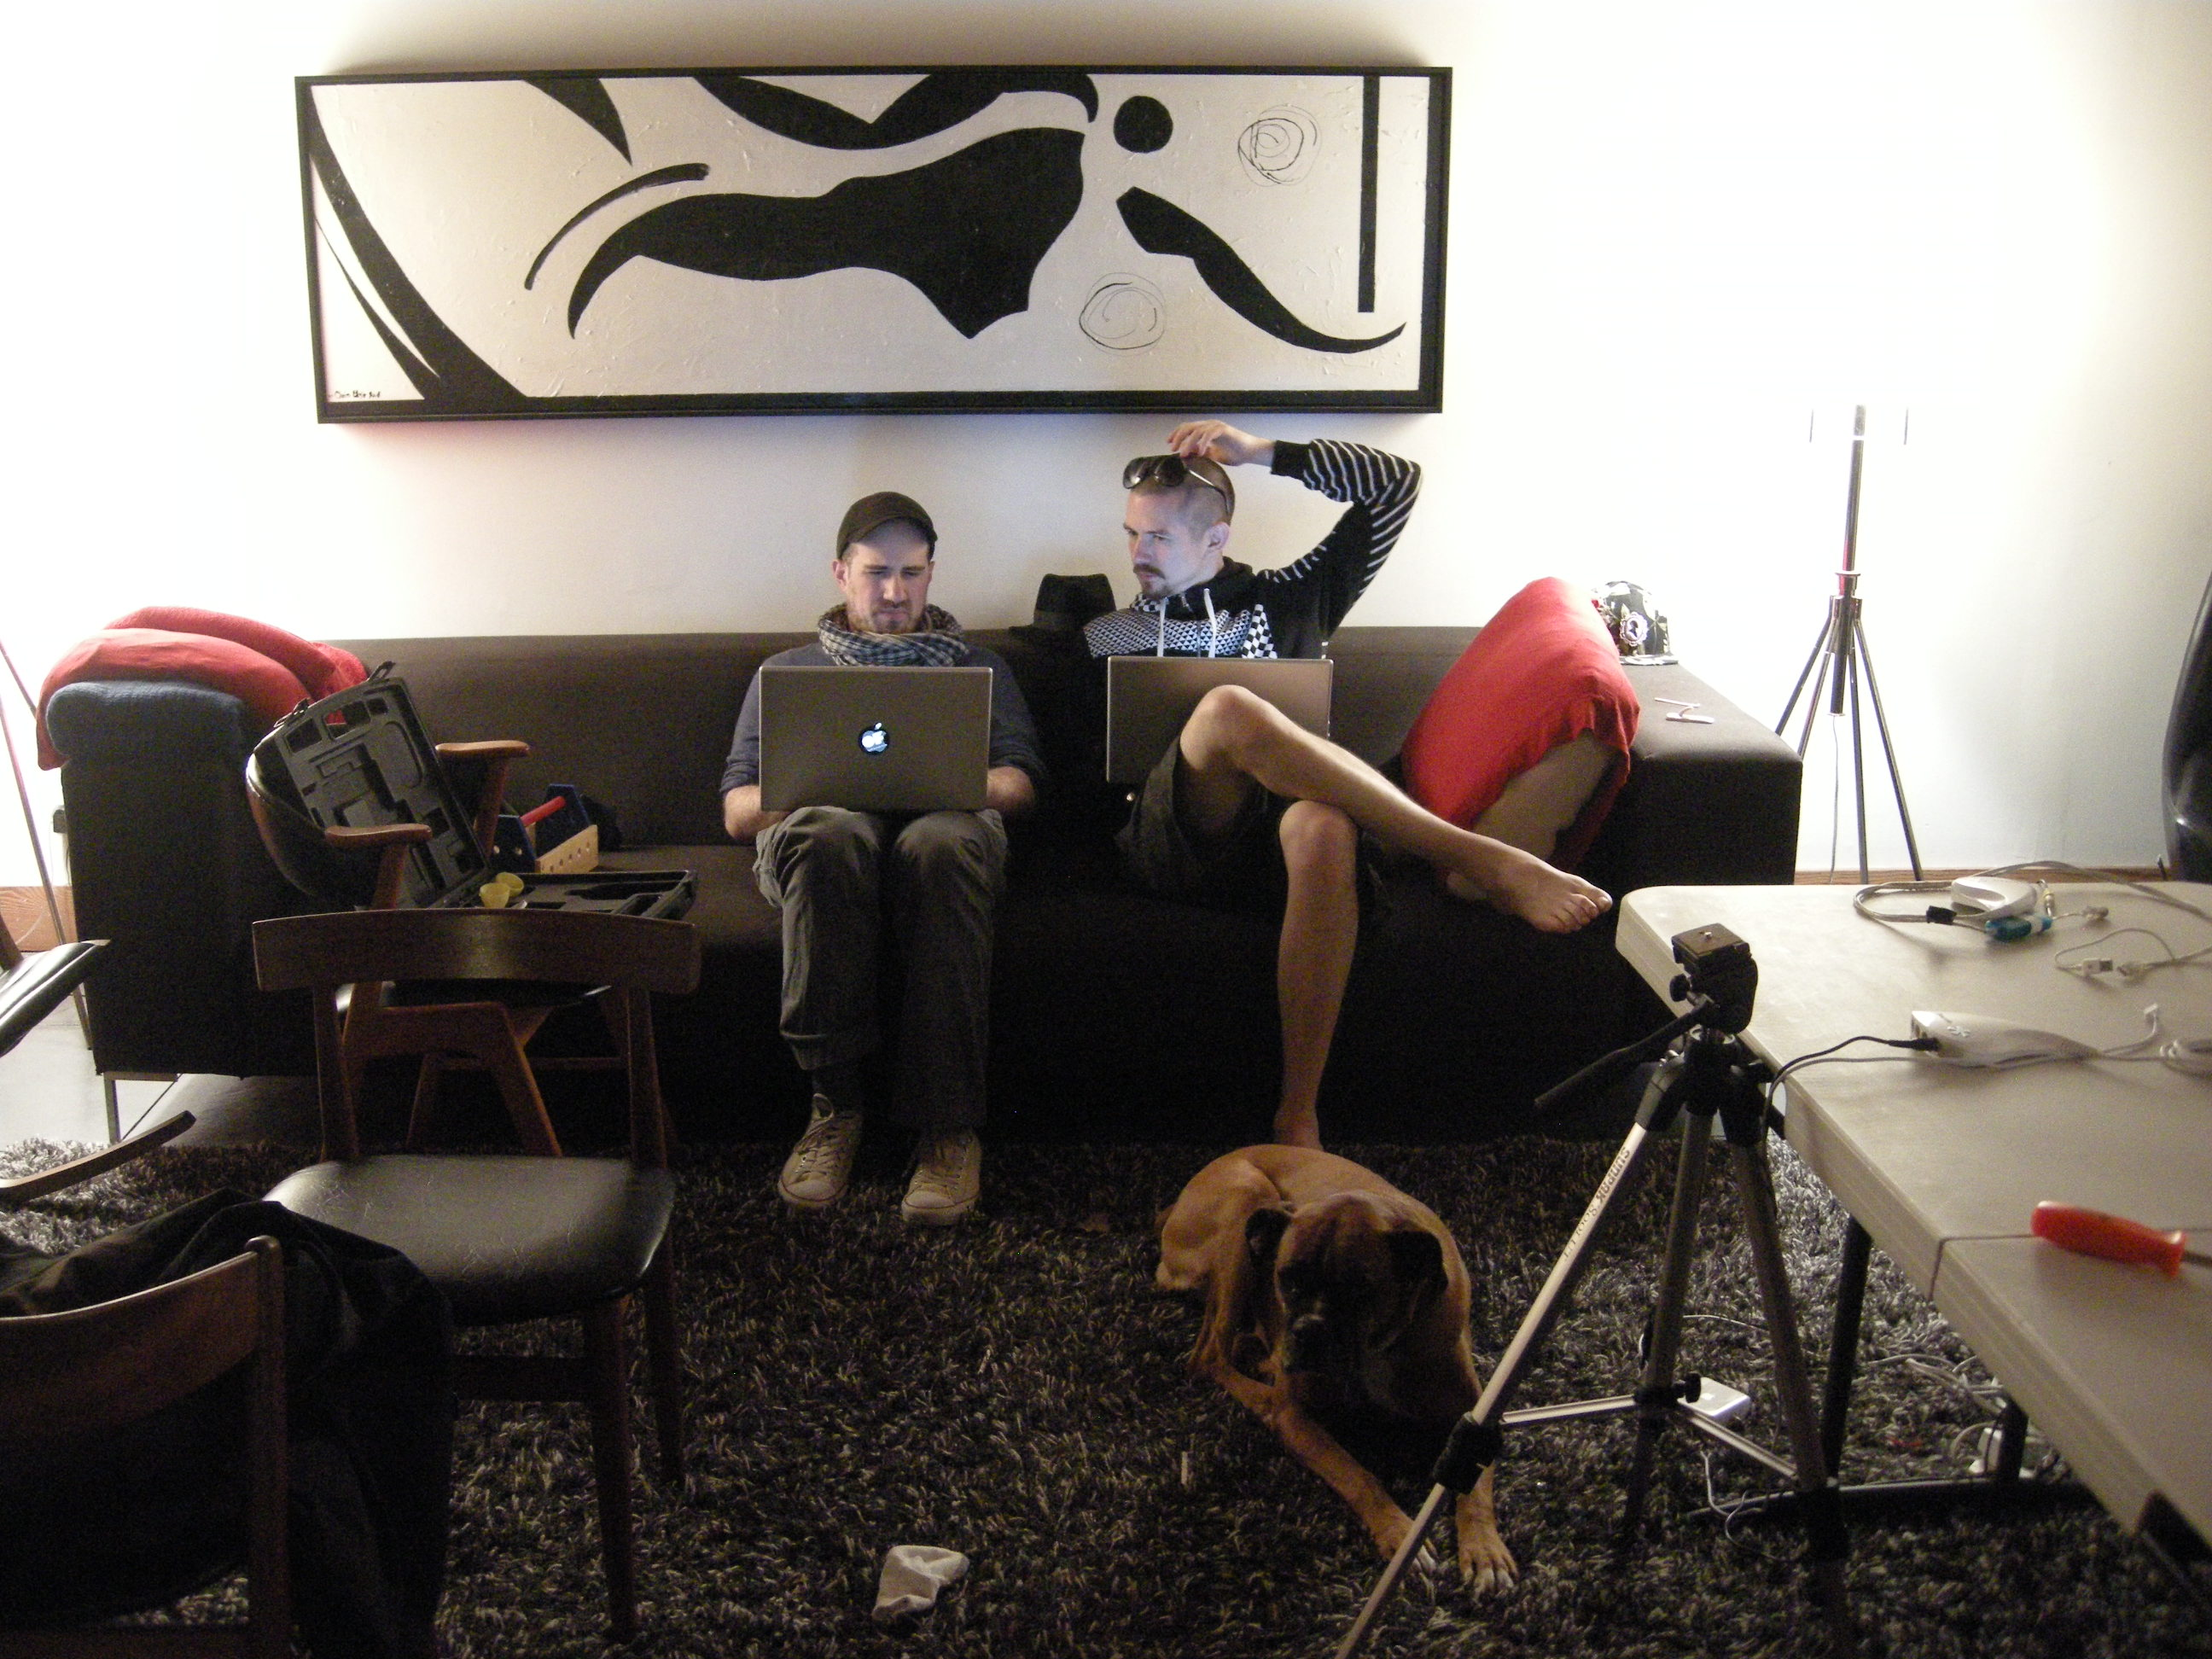 Zach Lieberman and Theo Watson being smart on the couch.